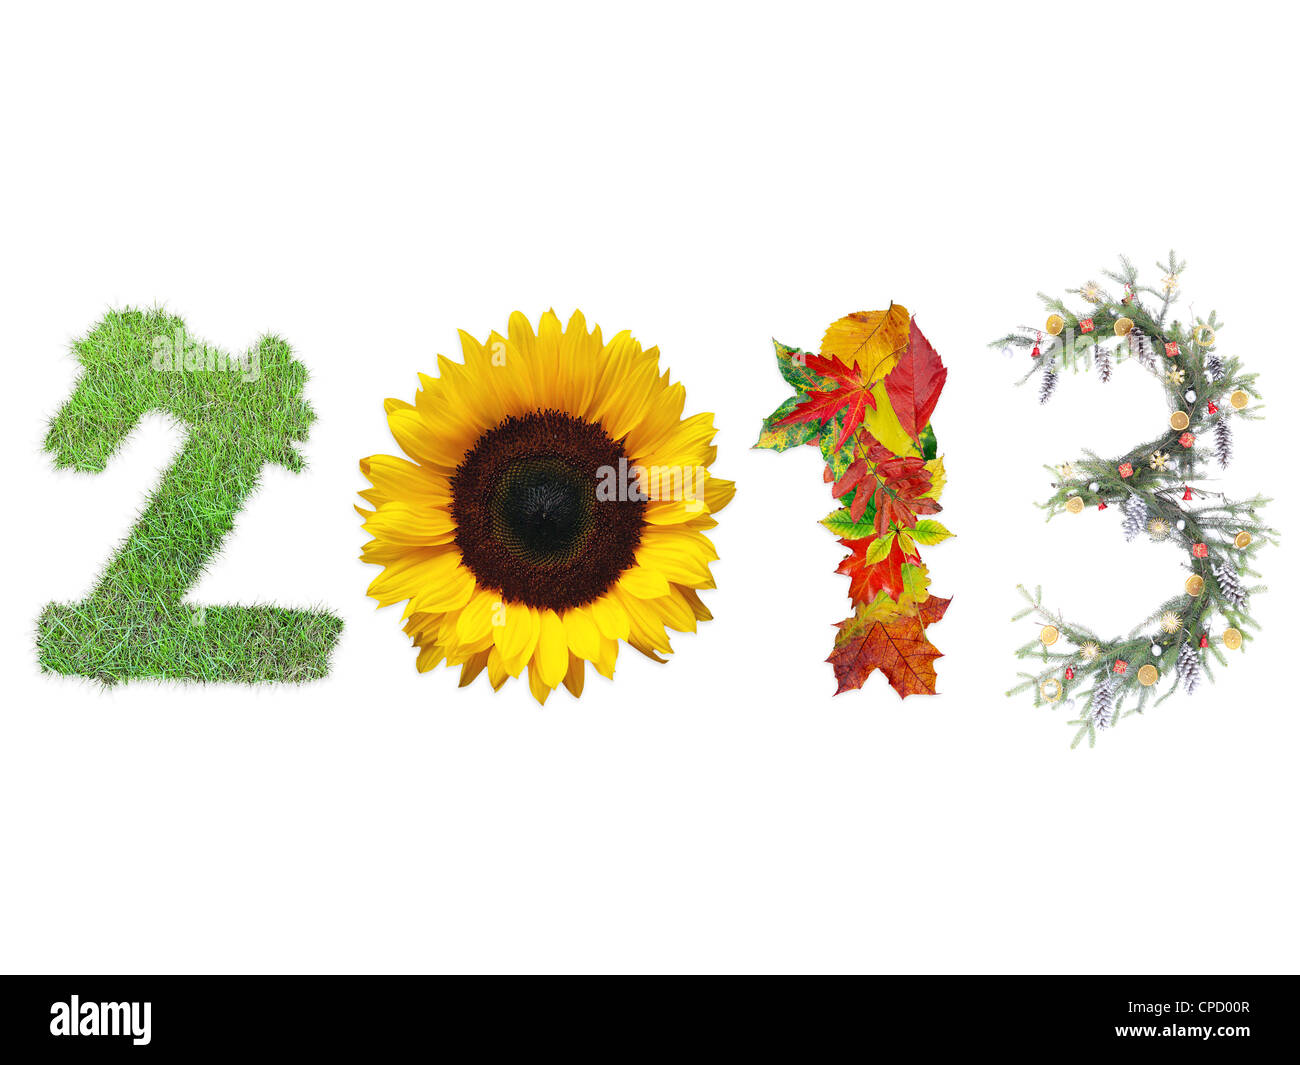 2013 digits made of fresh grass, sunflower, dead fall leaves and christmas wreath representing four season of the - Stock Image